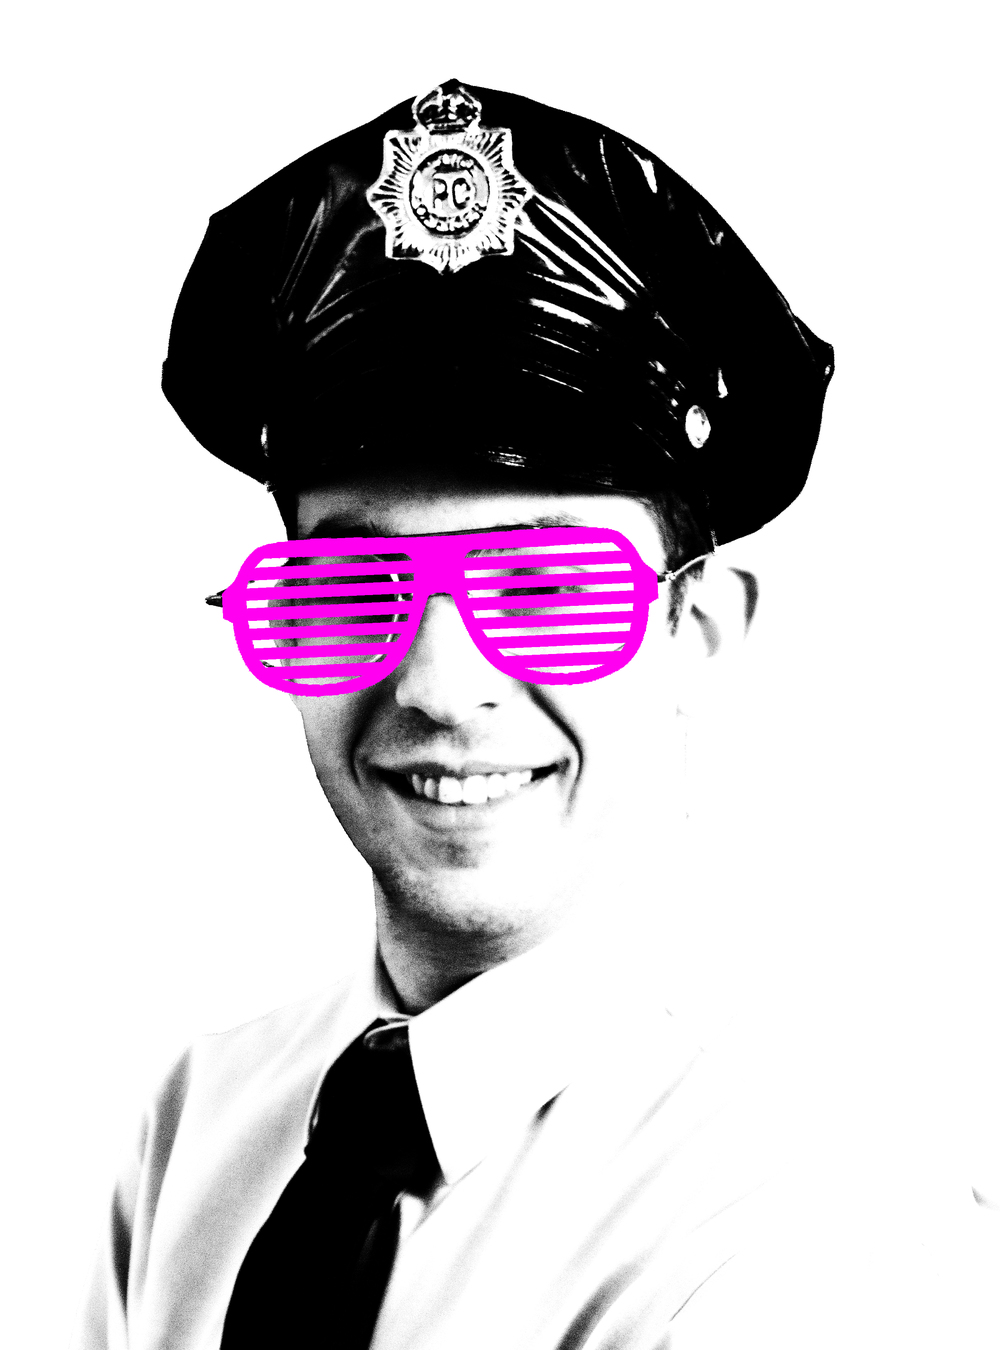 weird copcept album the weird copcept album documents the story of two chicago police officers leaving the force to pursue music careers their powerful and emotional journey